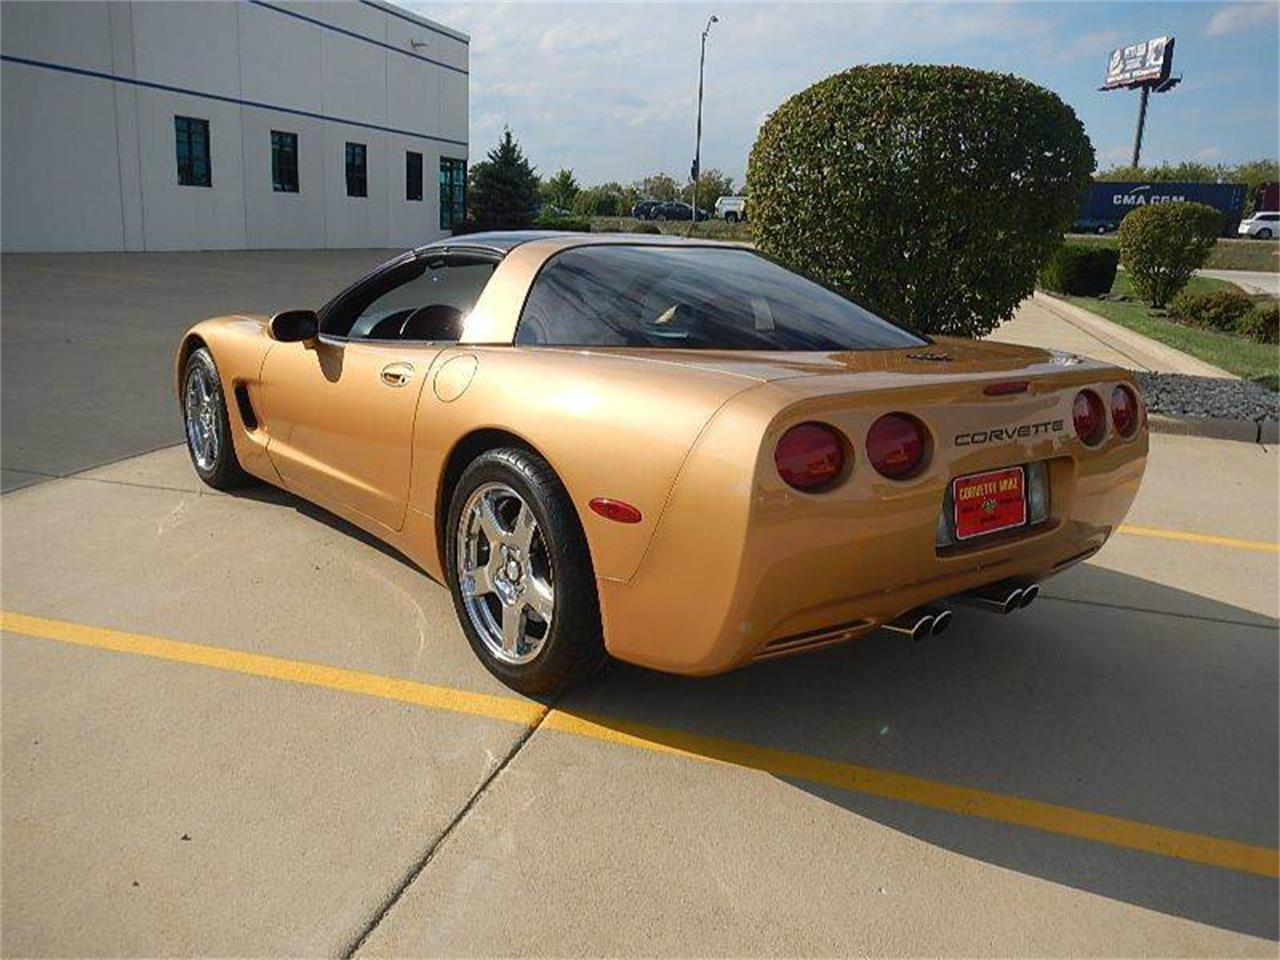 Large Picture of '98 Corvette located in Illinois - $34,990.00 Offered by Corvette Mike Midwest - JI7B